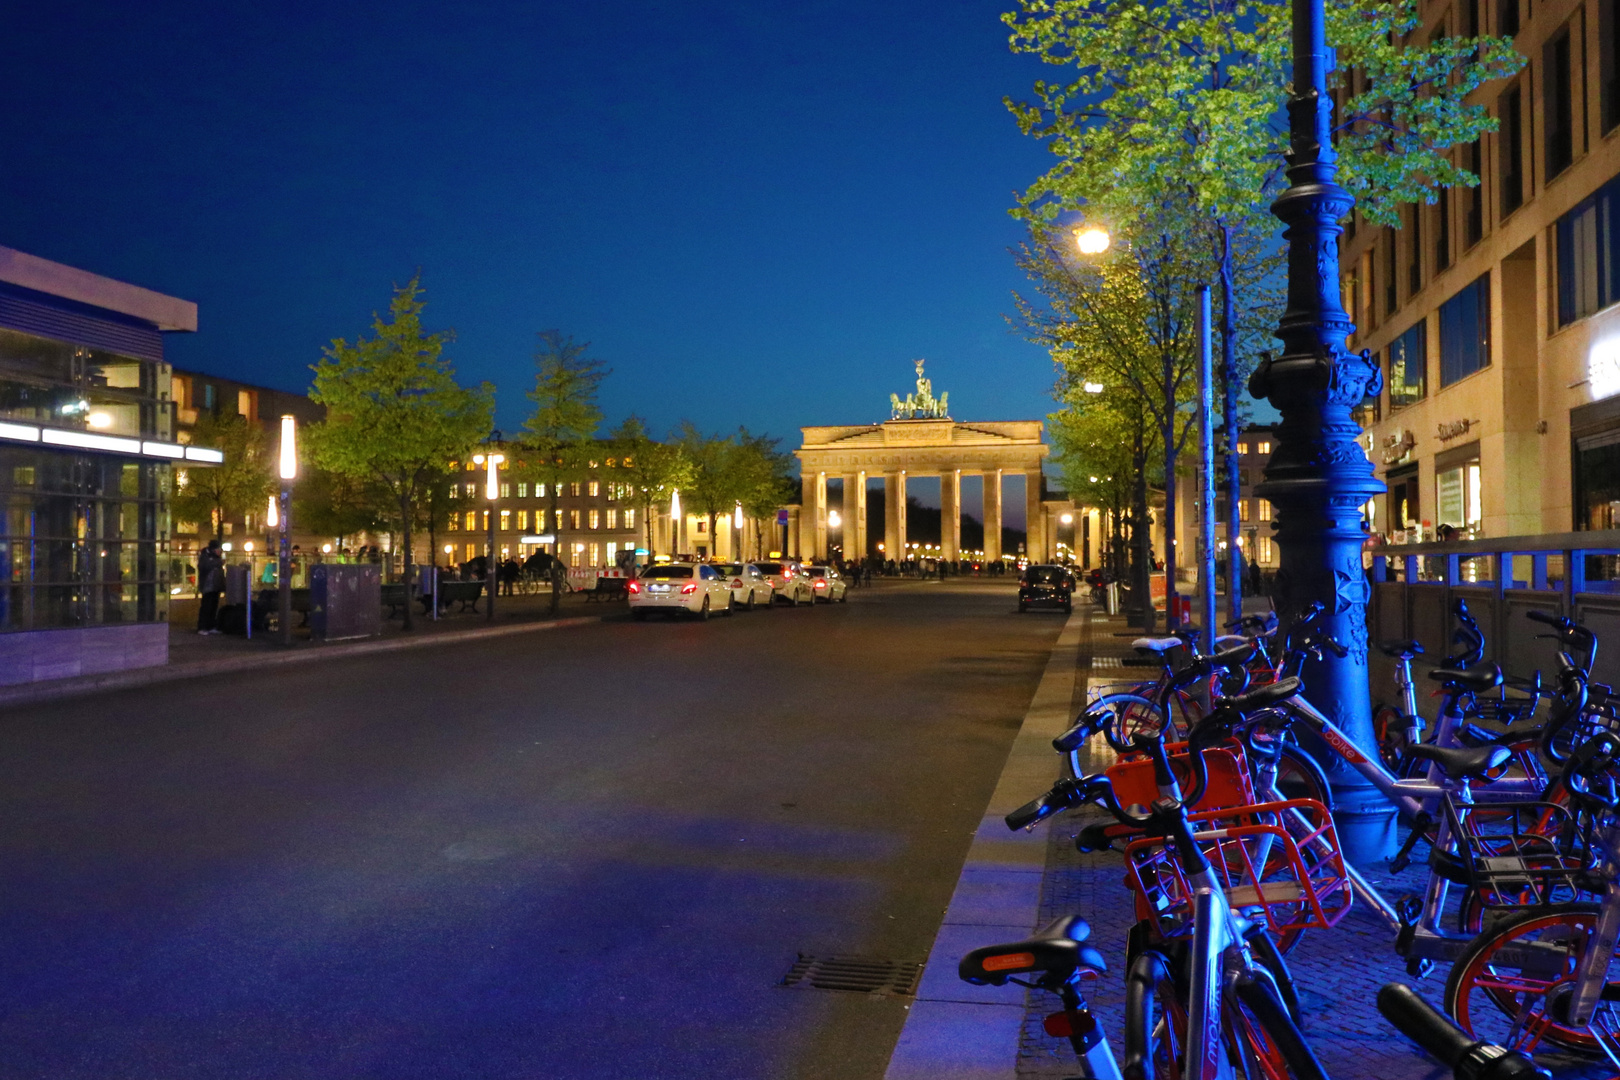 A night in Berlin